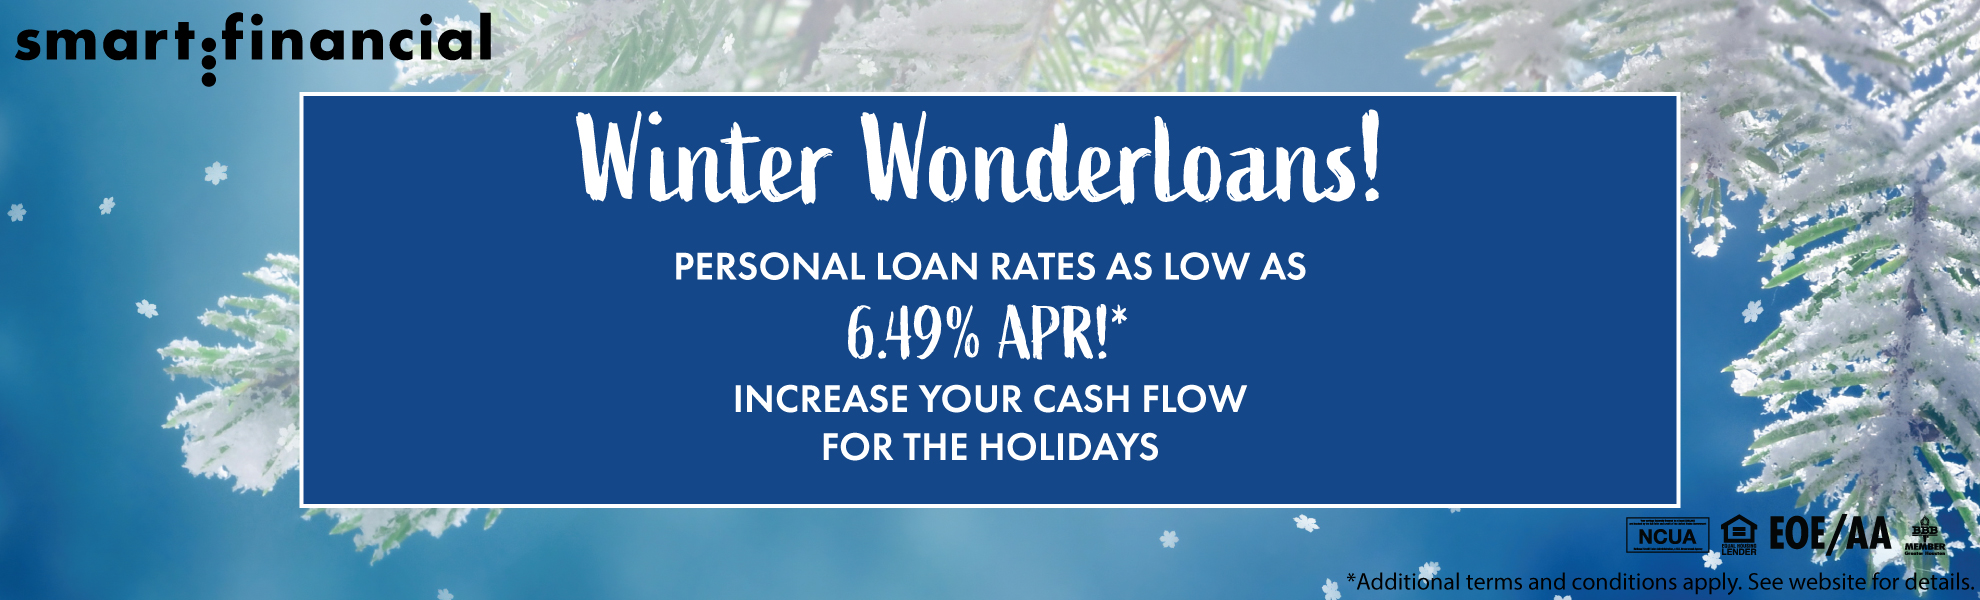 Winter Wonderloans